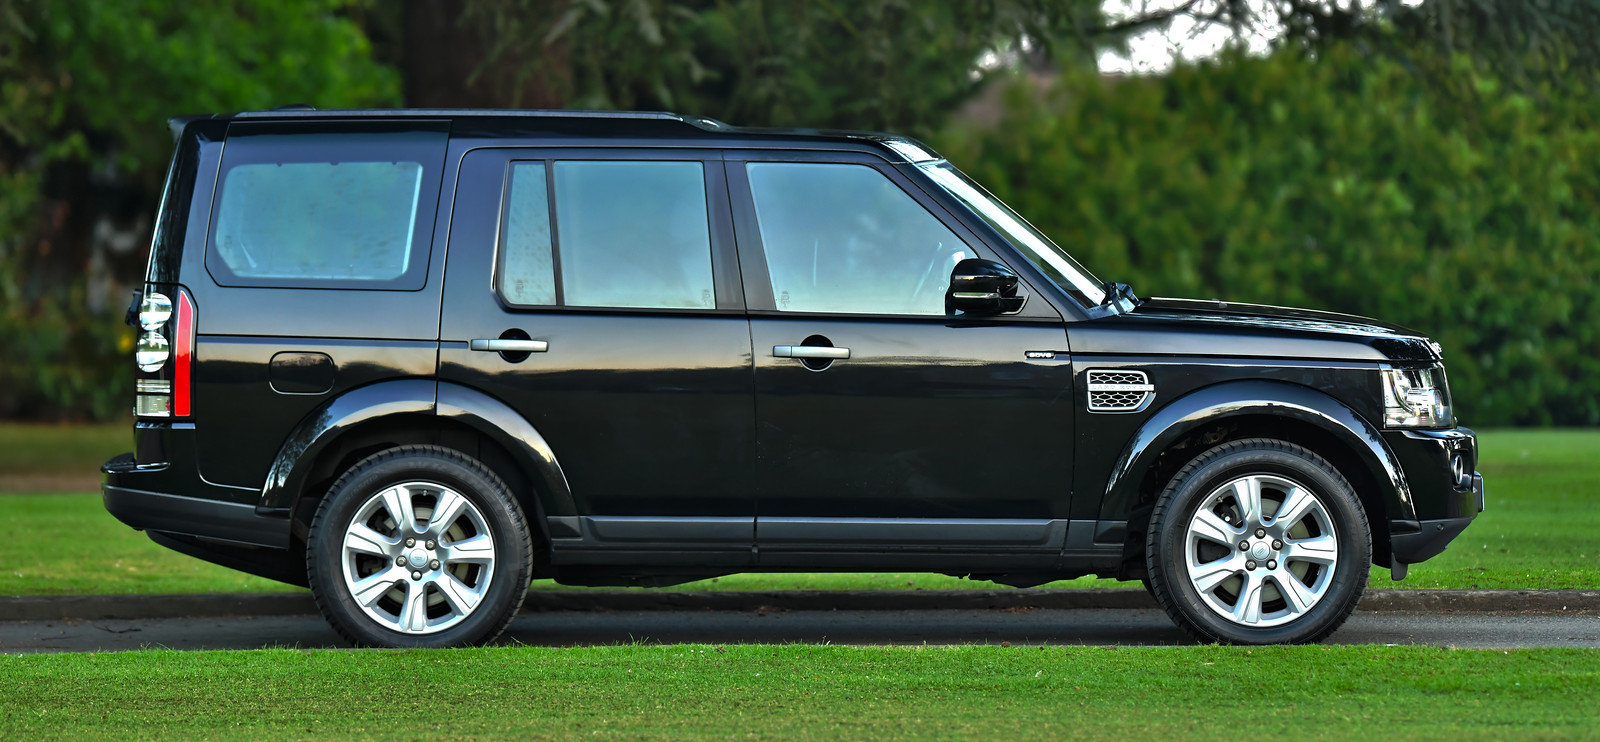 2015 Land Rover Discovery 3.0 SDV6 SE Tech 5dr Auto For Sale (picture 2 of 6)